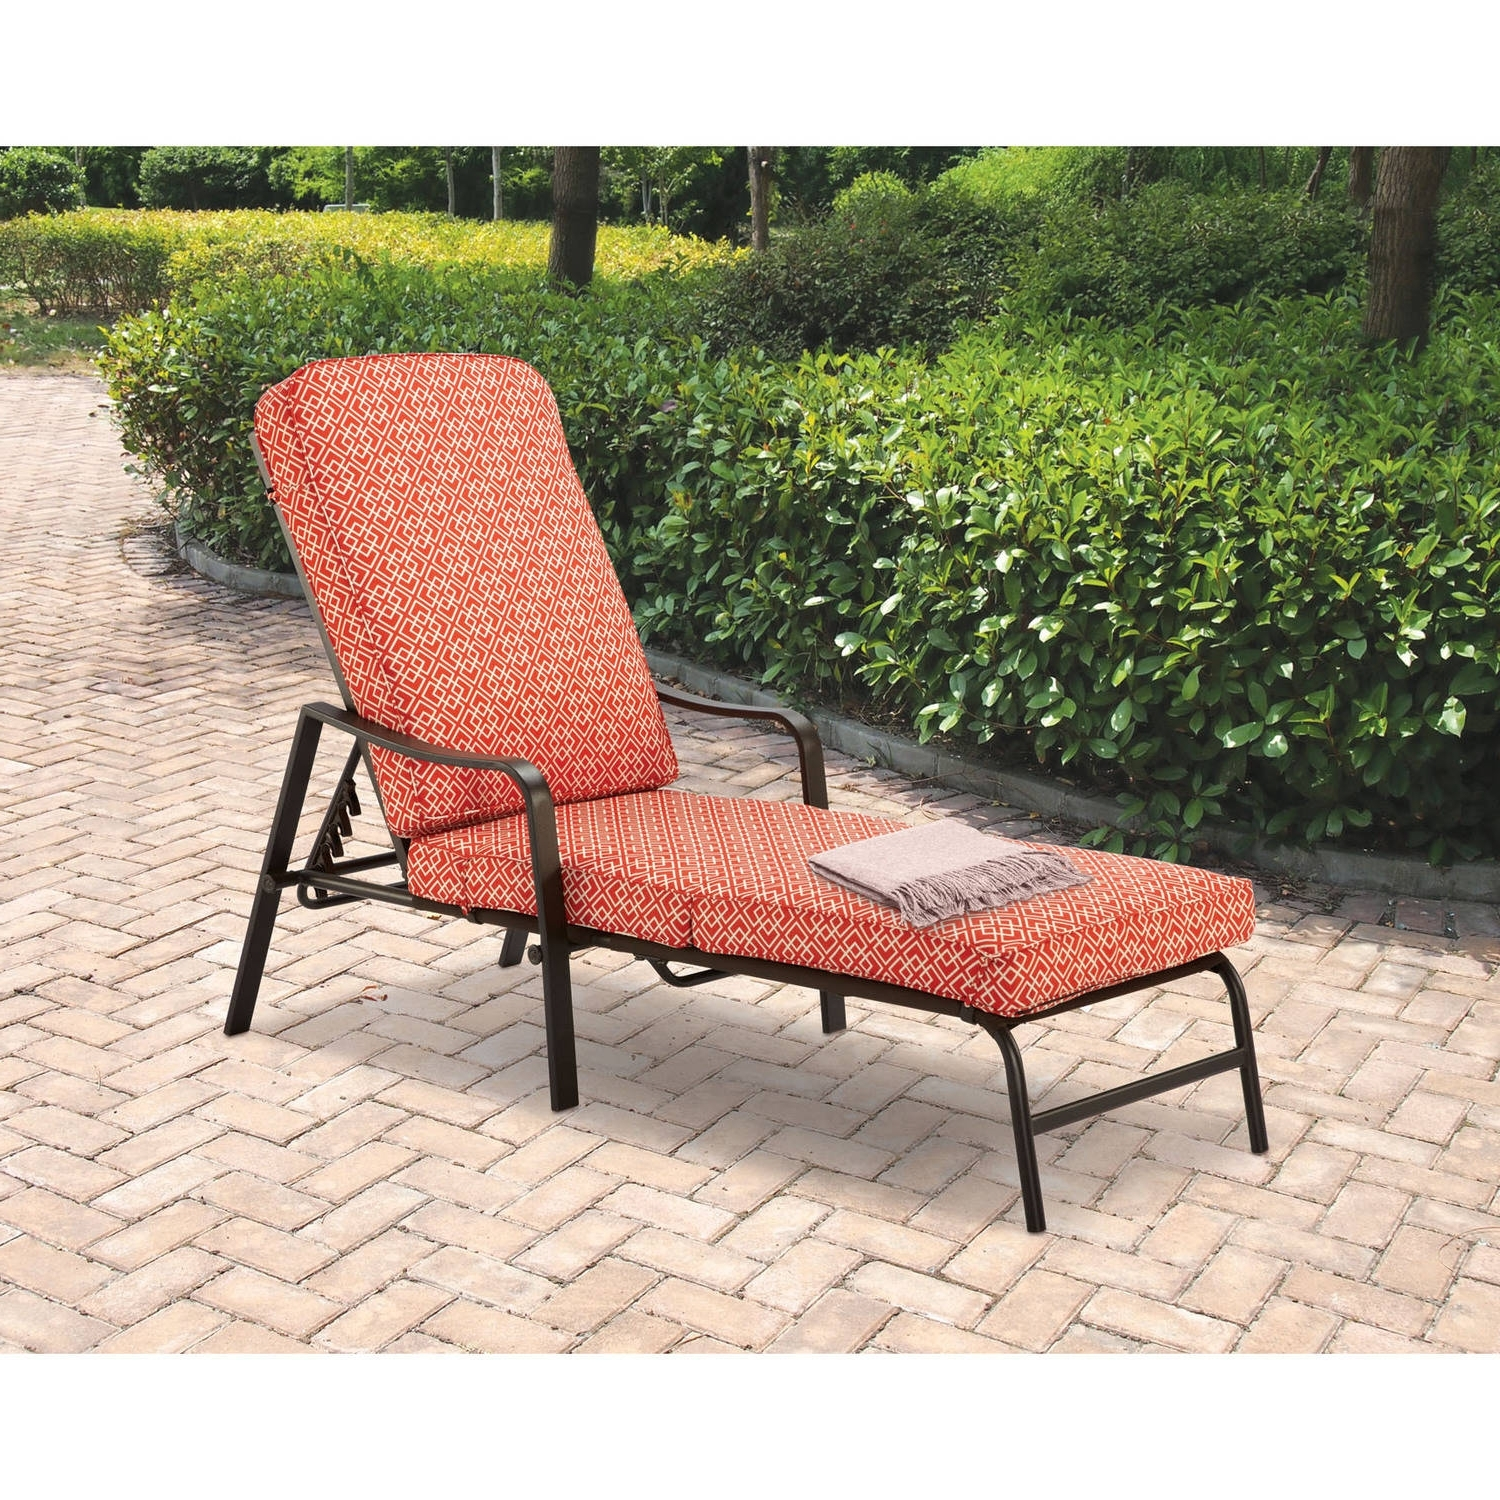 Walmart Chaise Lounge Chairs For Popular Mainstays Outdoor Chaise Lounge, Orange Geo Pattern – Walmart (View 7 of 15)